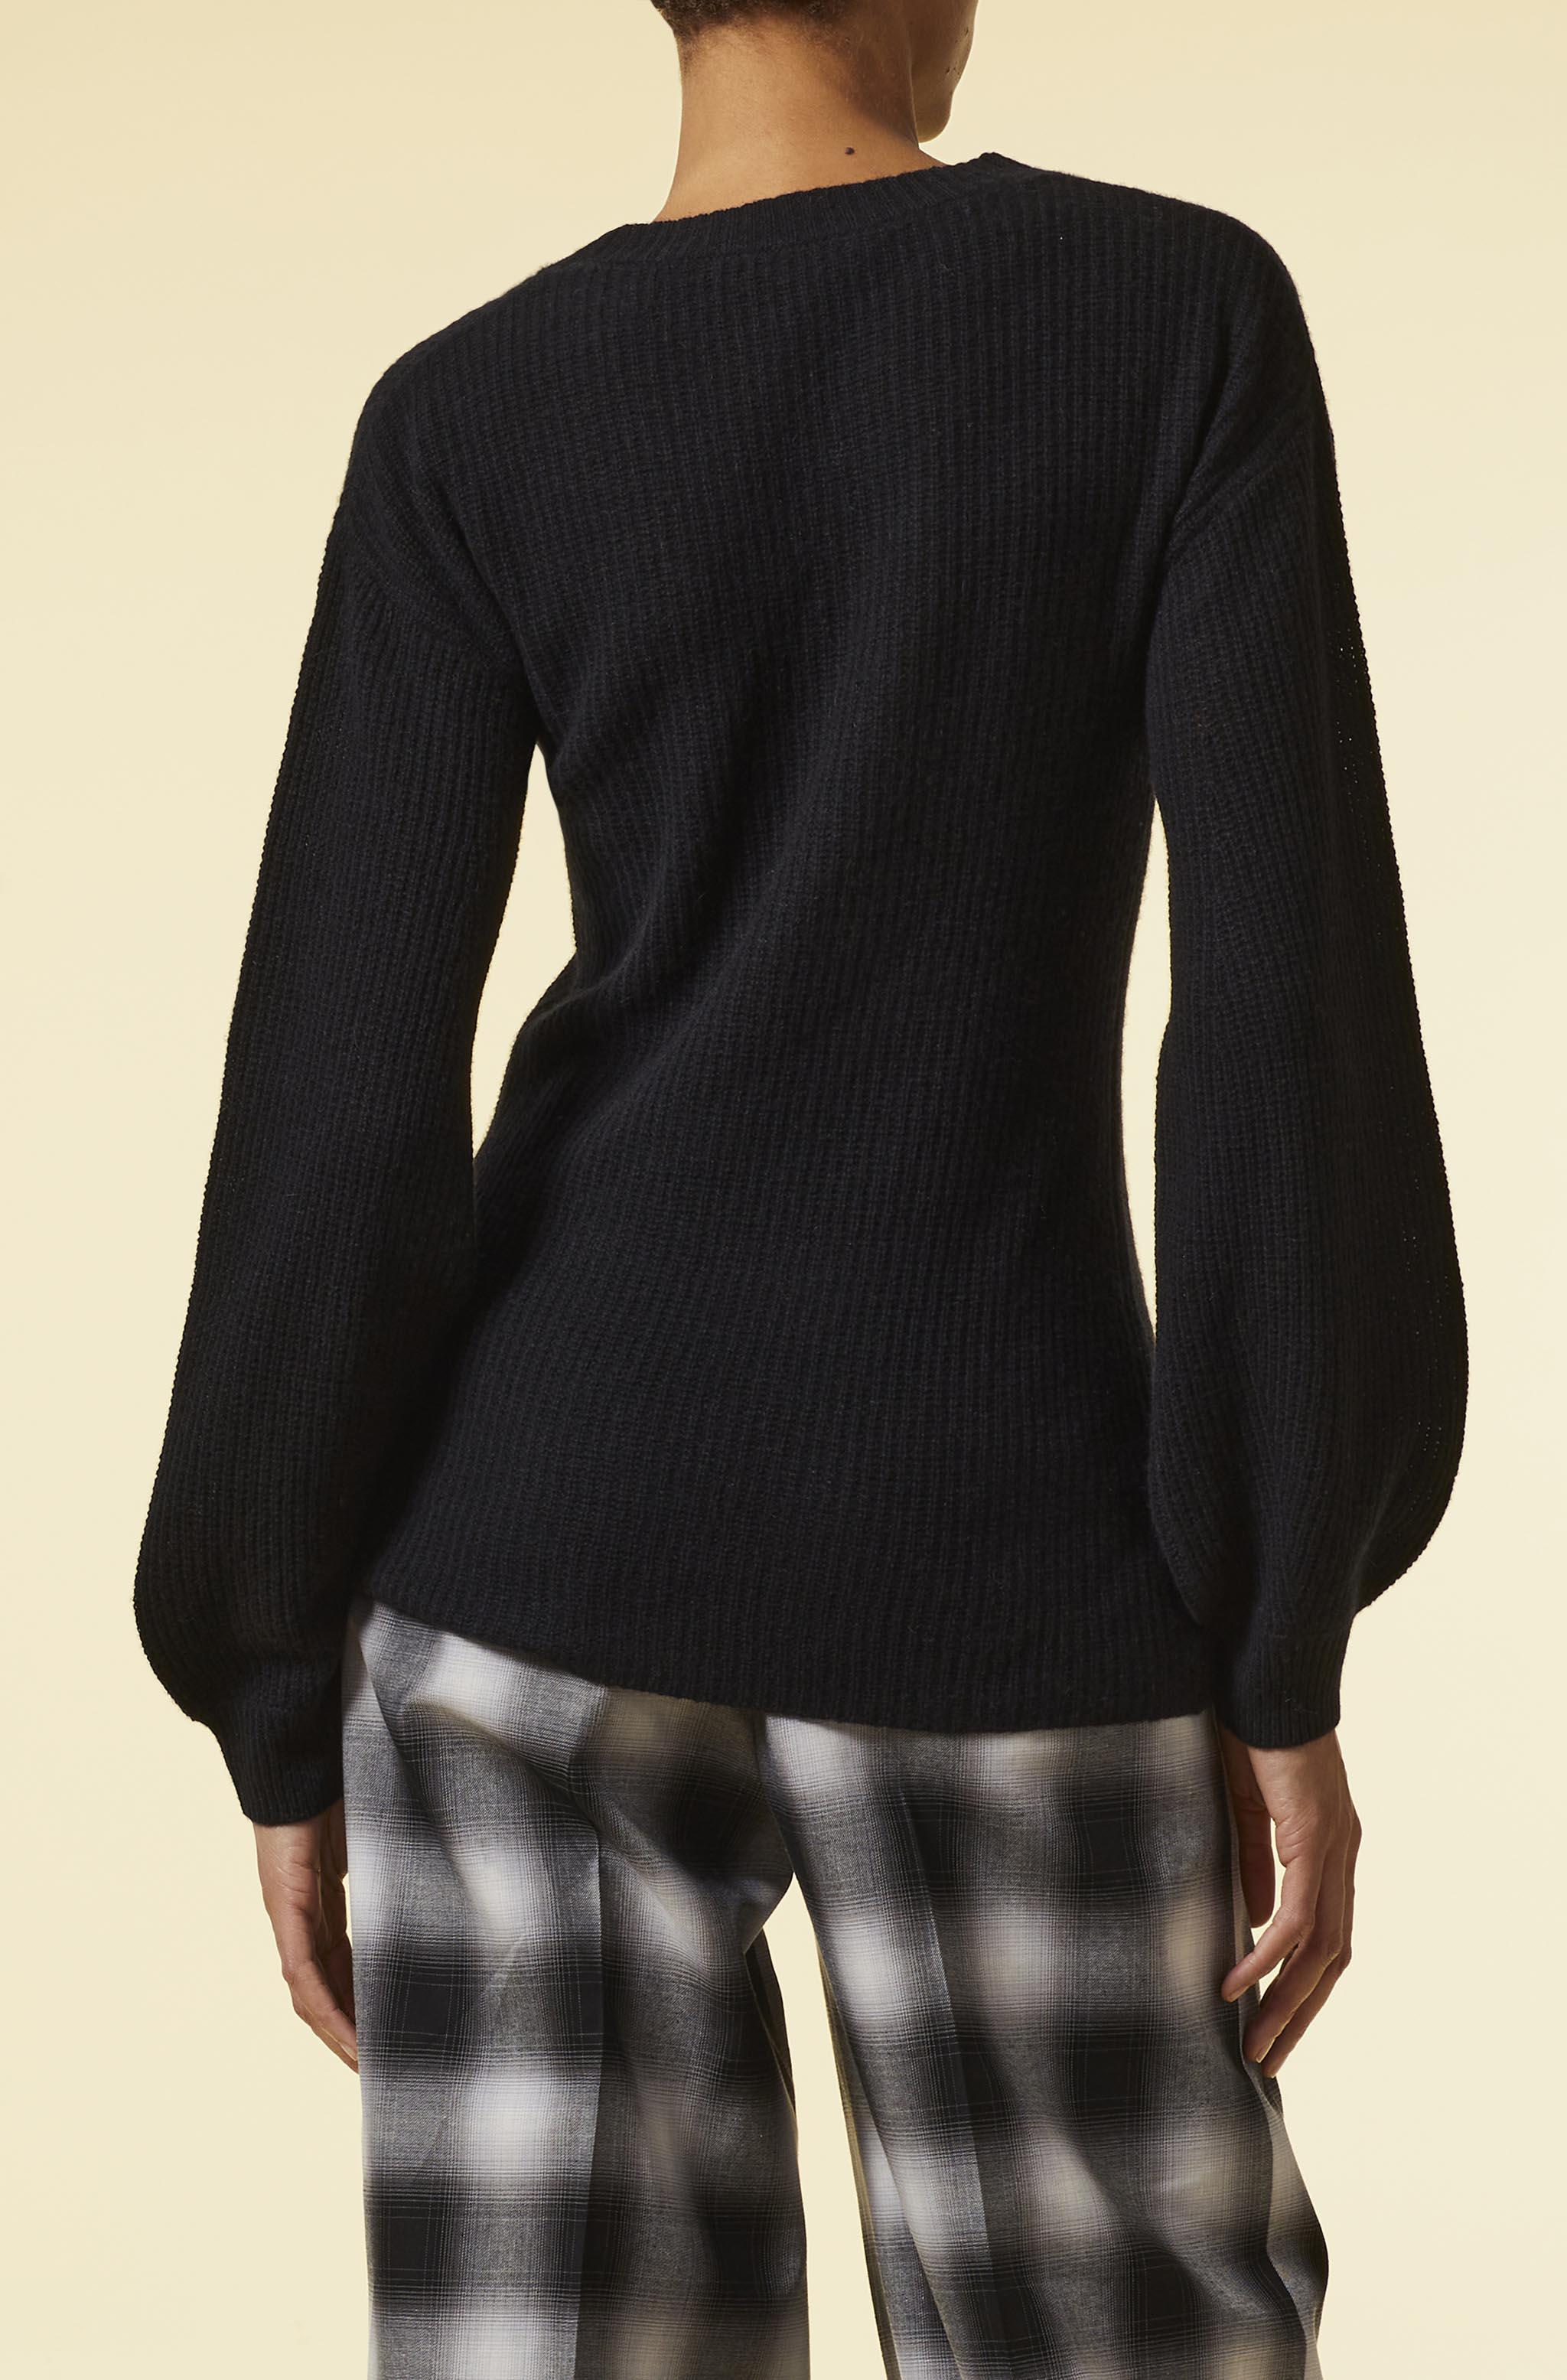 'Brenner' Knit Sweater 2